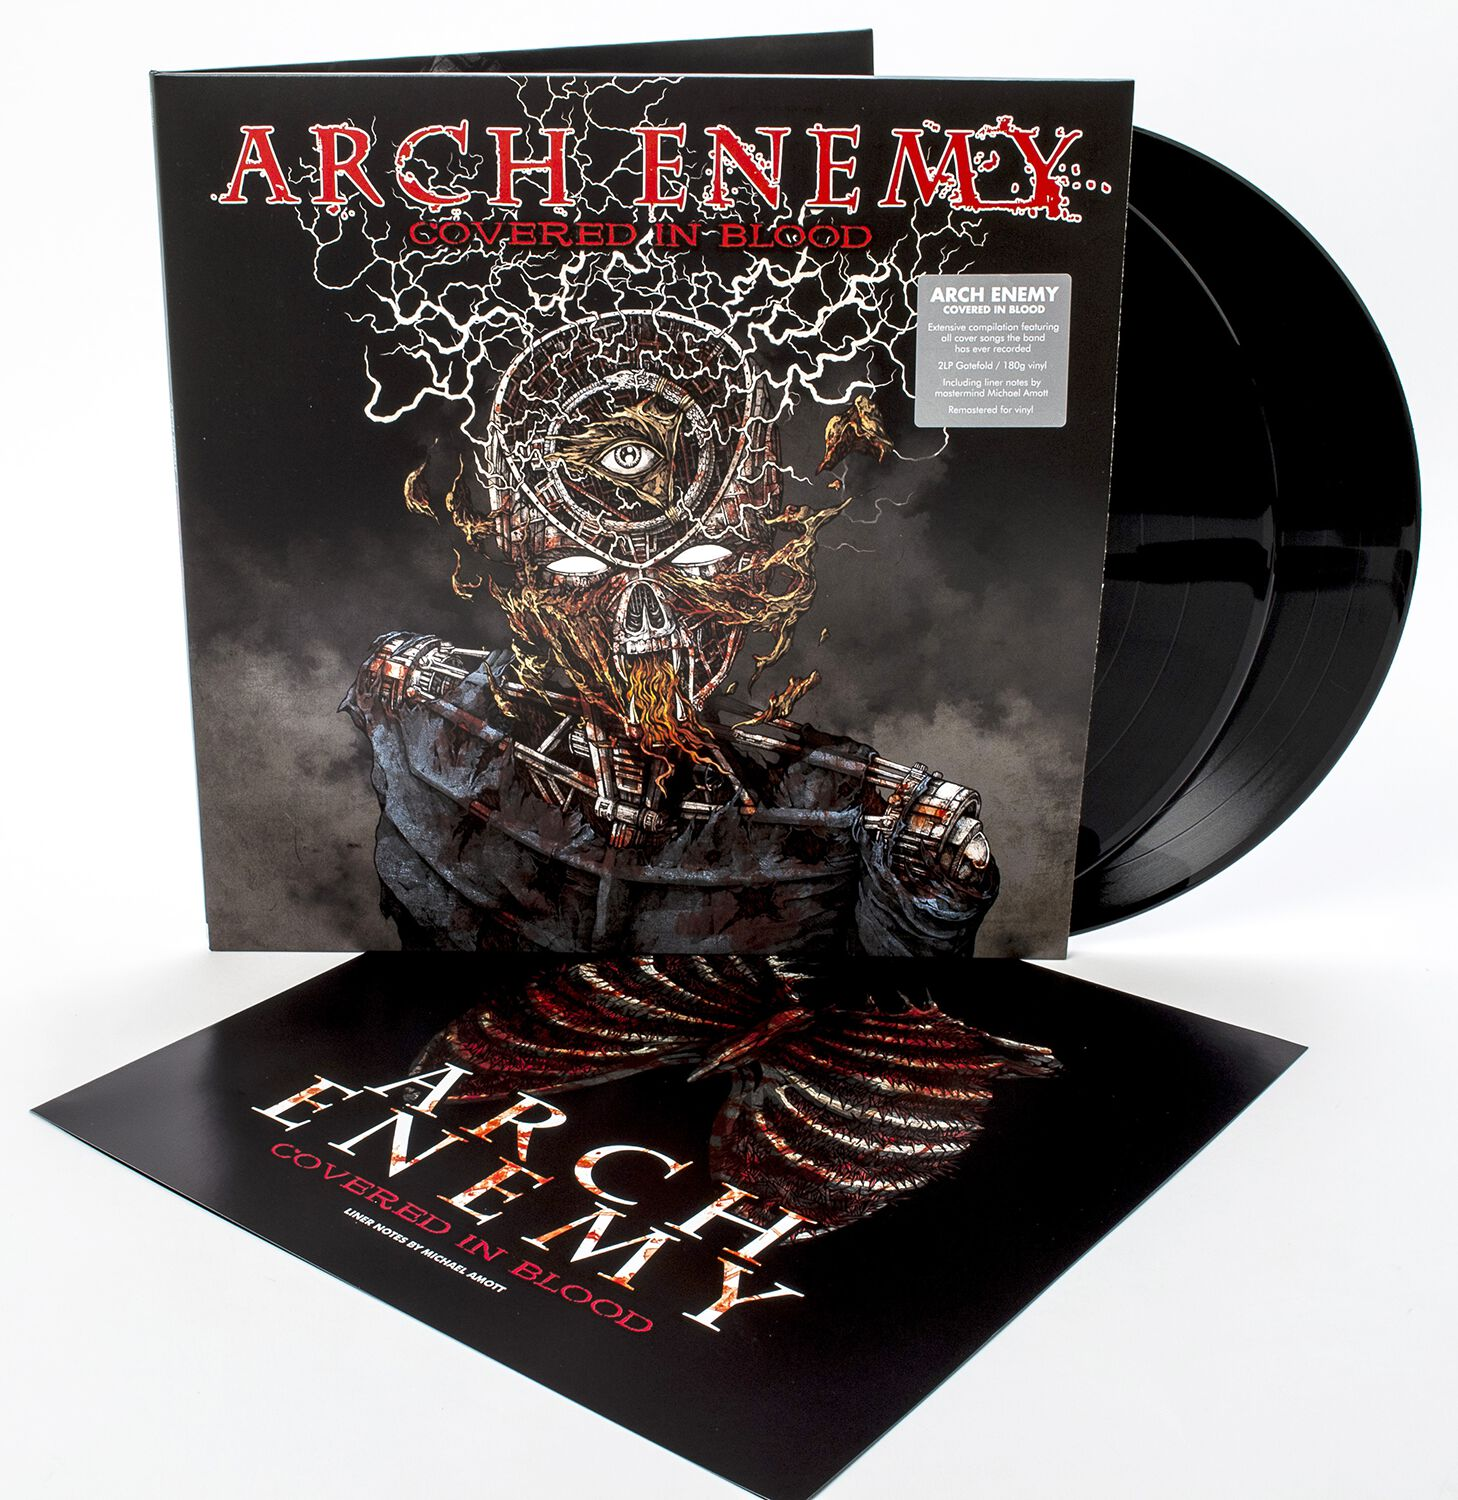 Image of Arch Enemy Covered in blood 2-LP Standard